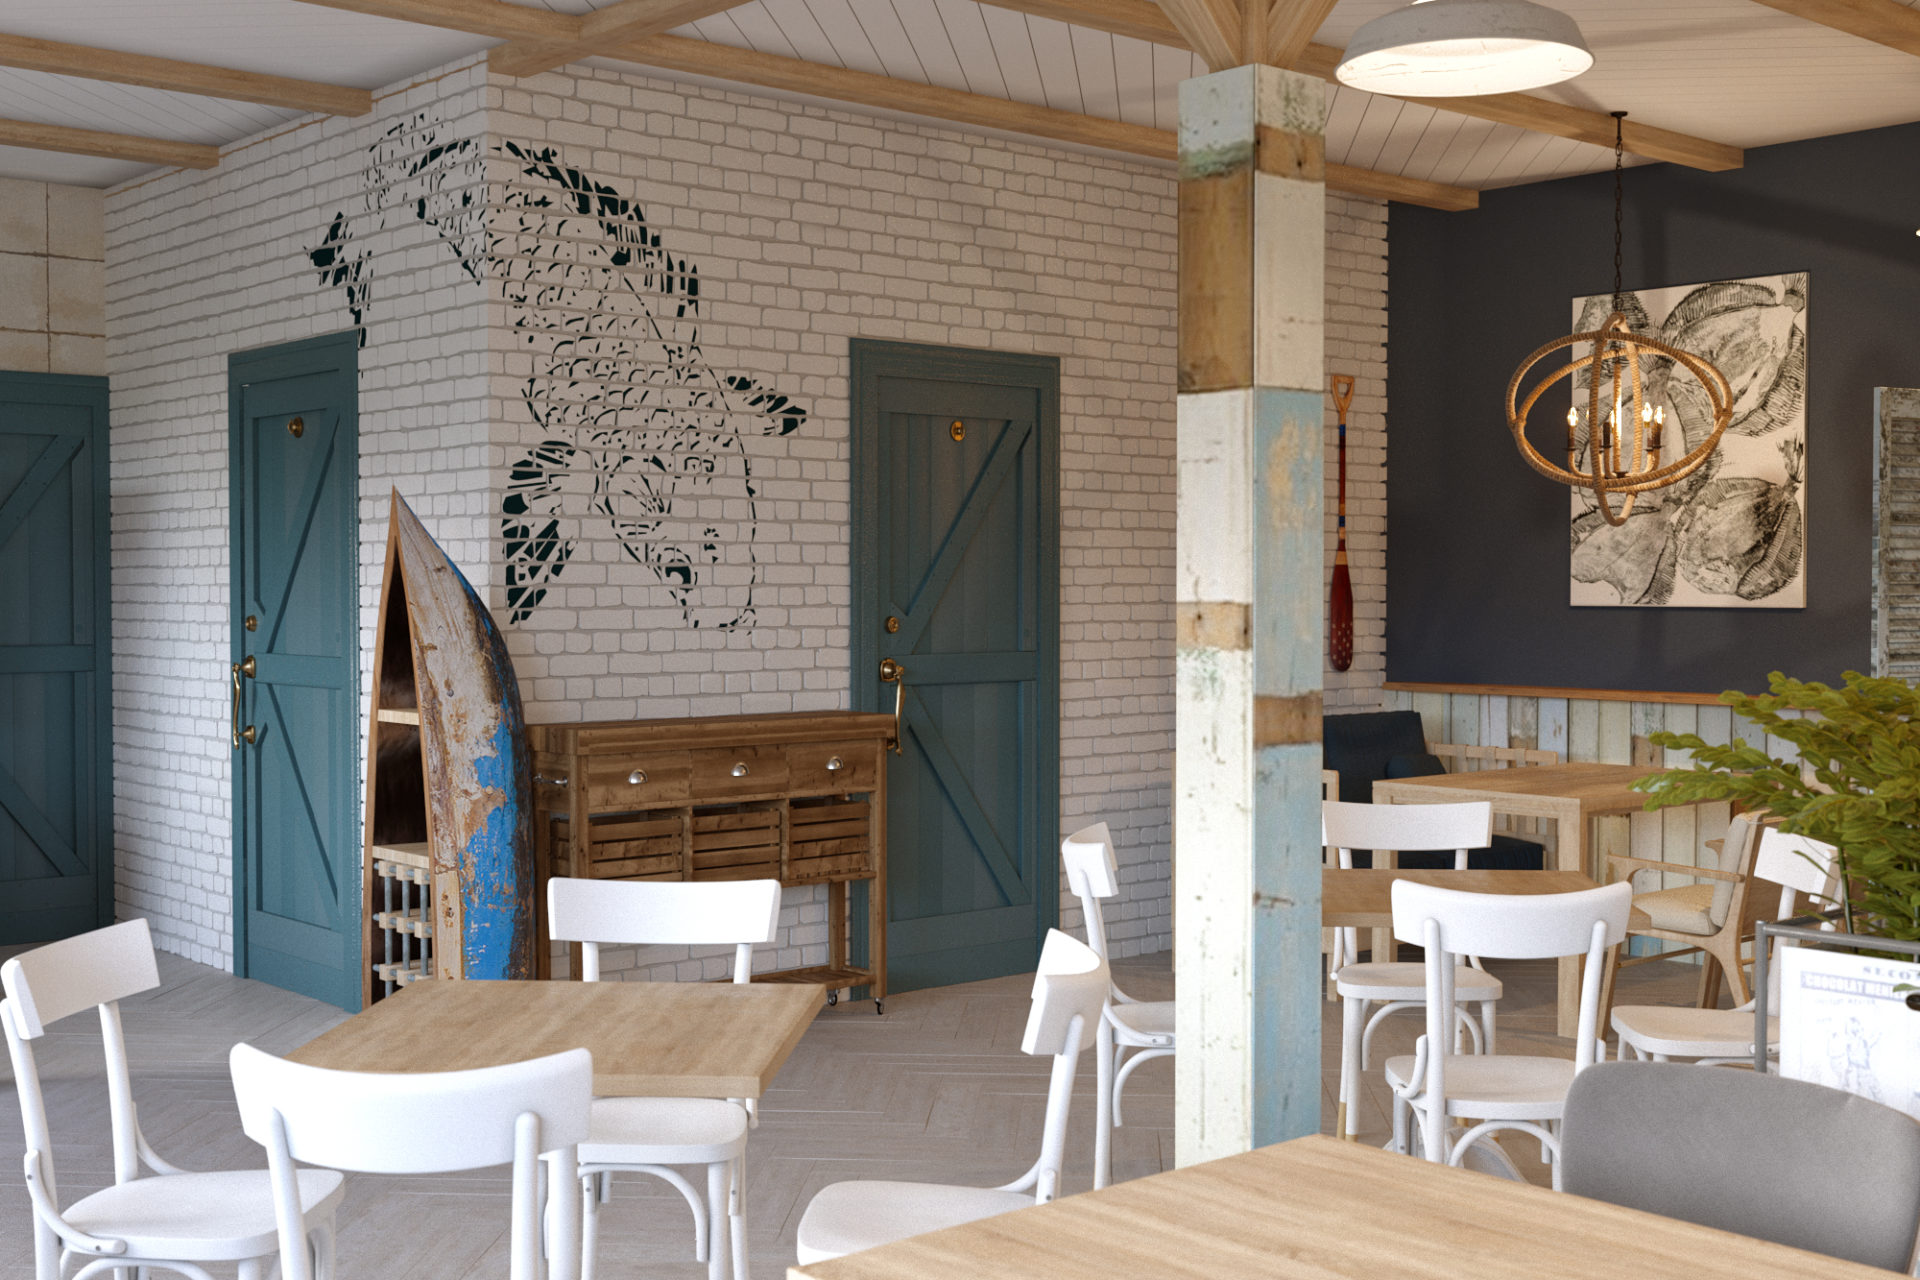 Viva Design cafe Michurinsk8